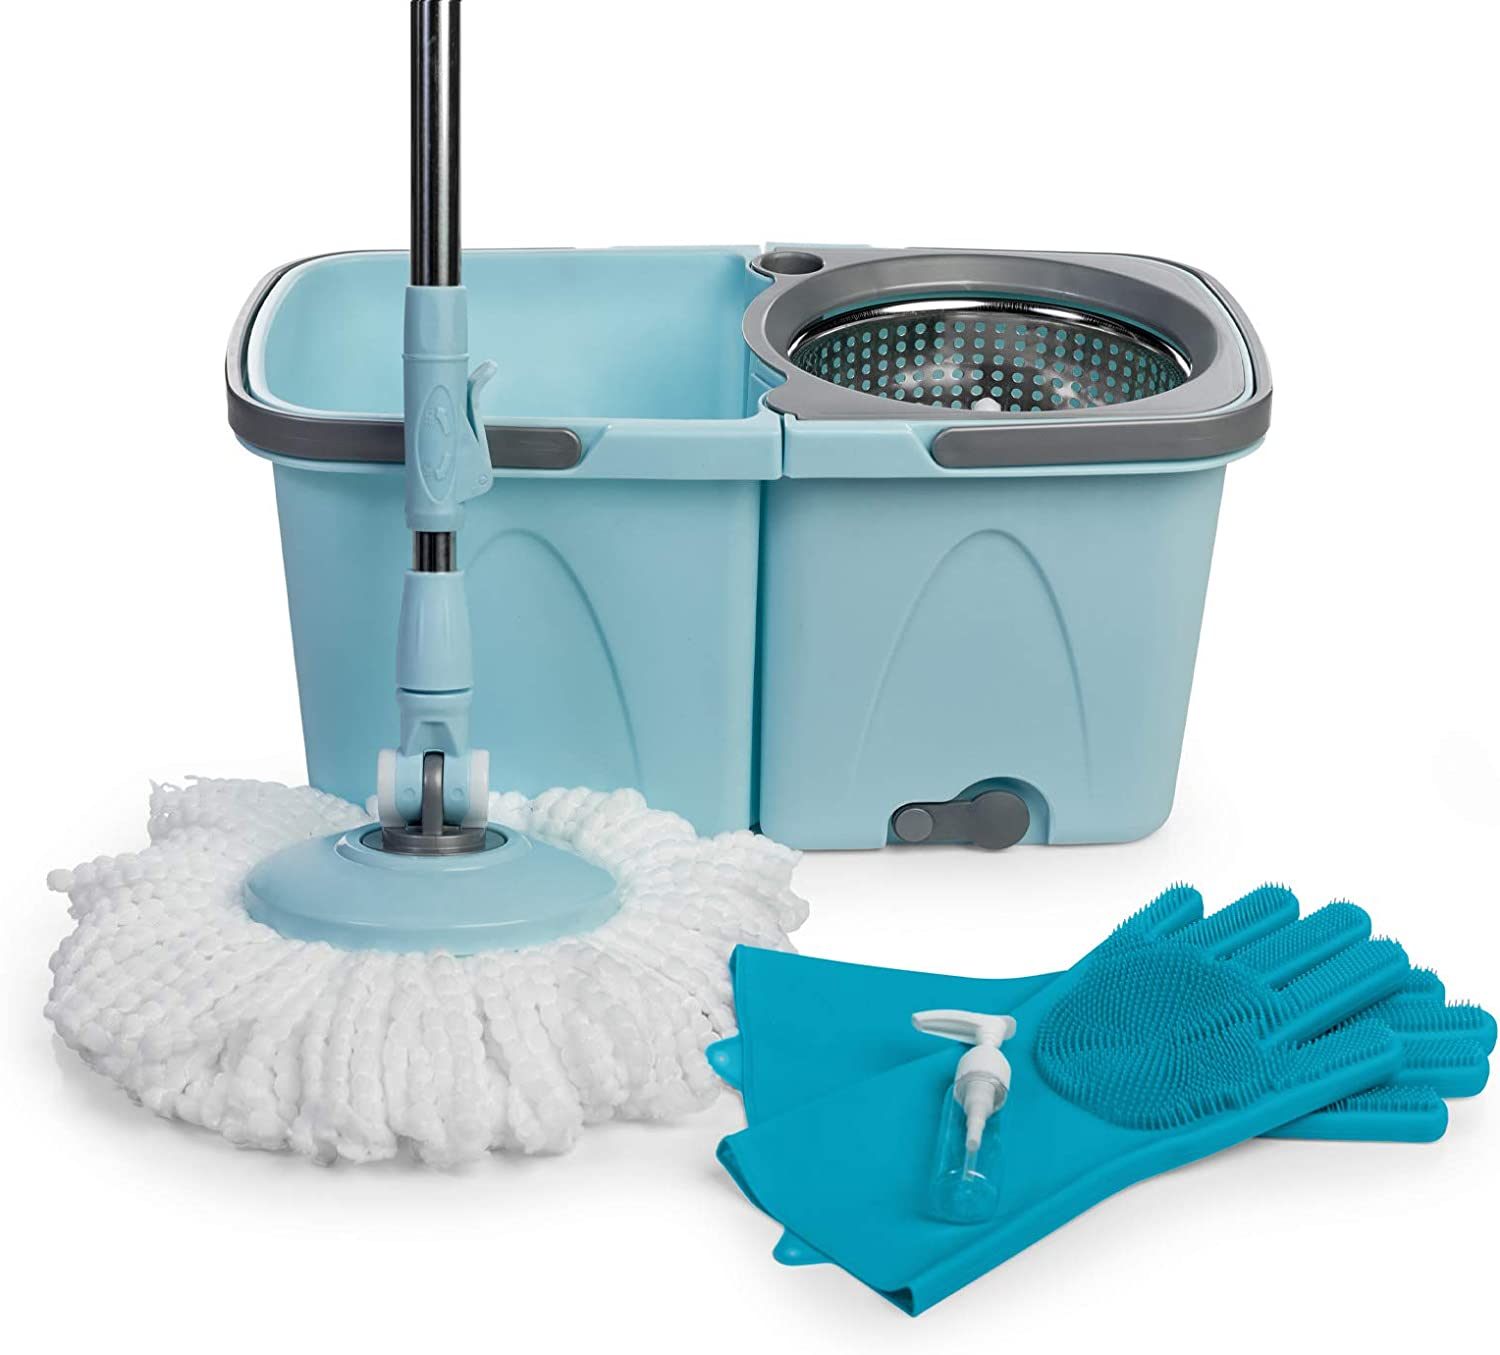 SoftSpin Spin Mop and Bucket – 2 Stage Floor Mop System with Built-in Detergent Dispenser Separates Clean and Dirty Water to Get Floors Cleaner - Silicone Scrub Gloves Included (Blue)